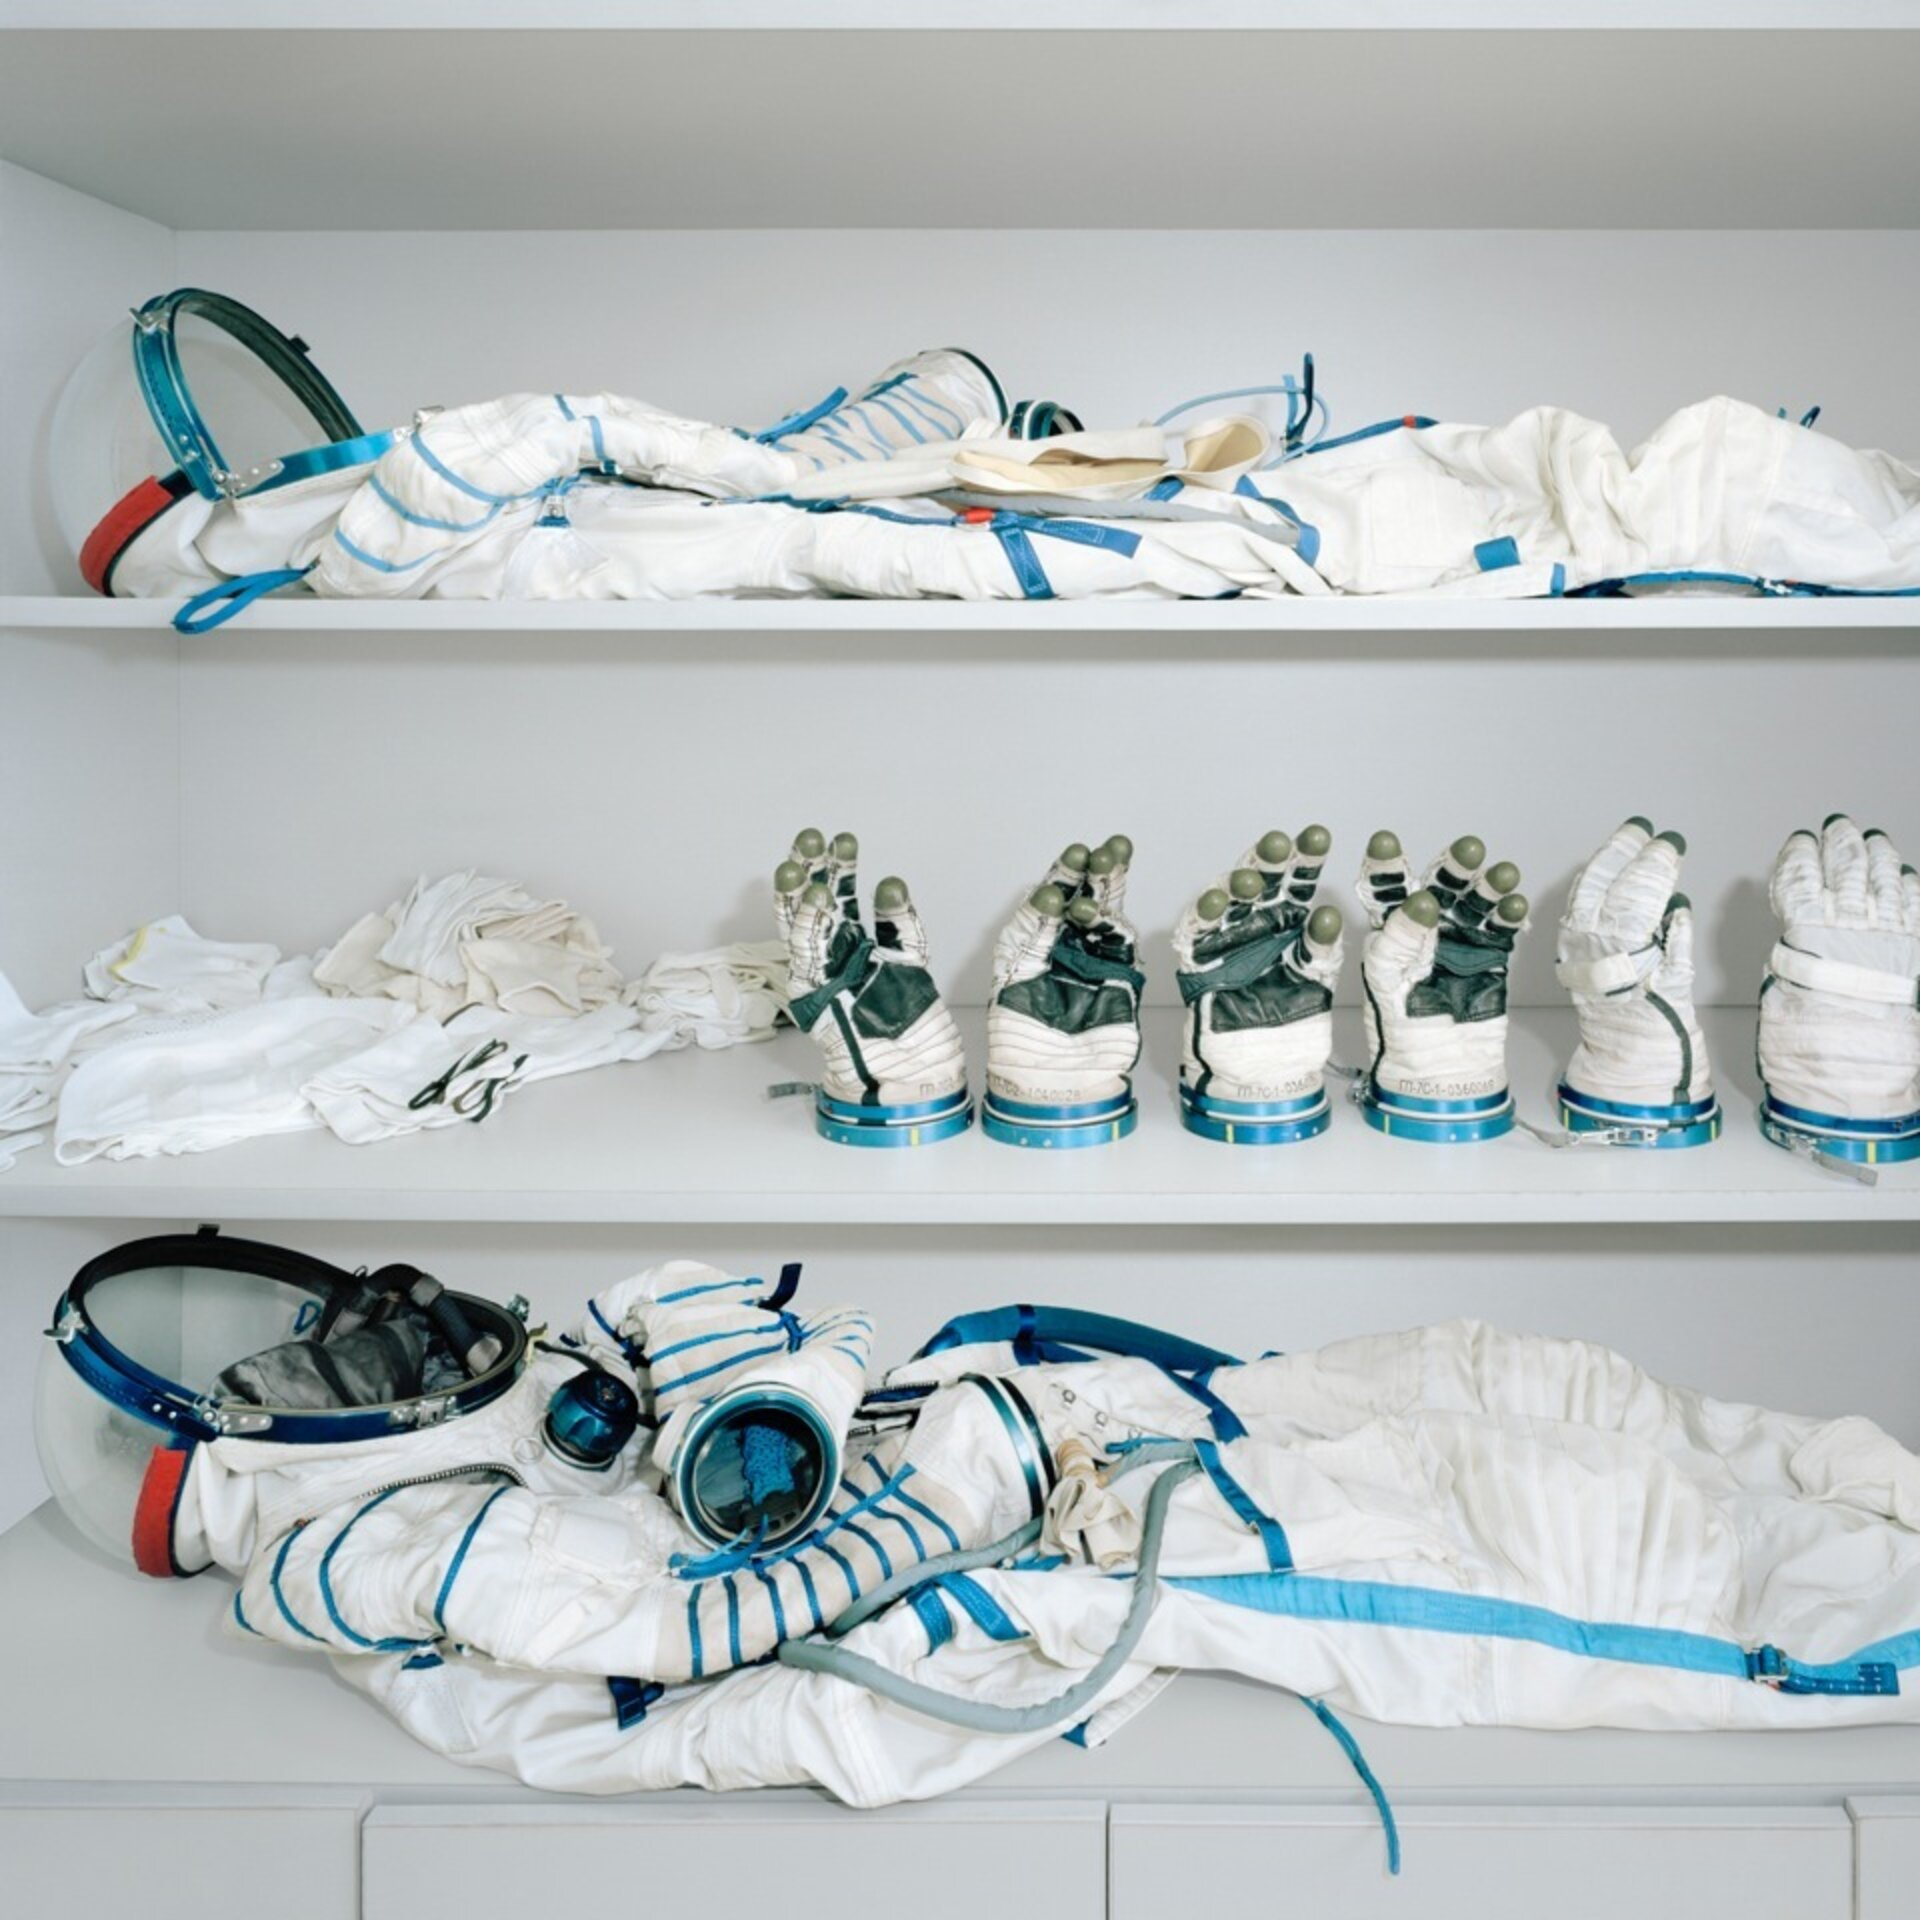 Astronauts' dressing room